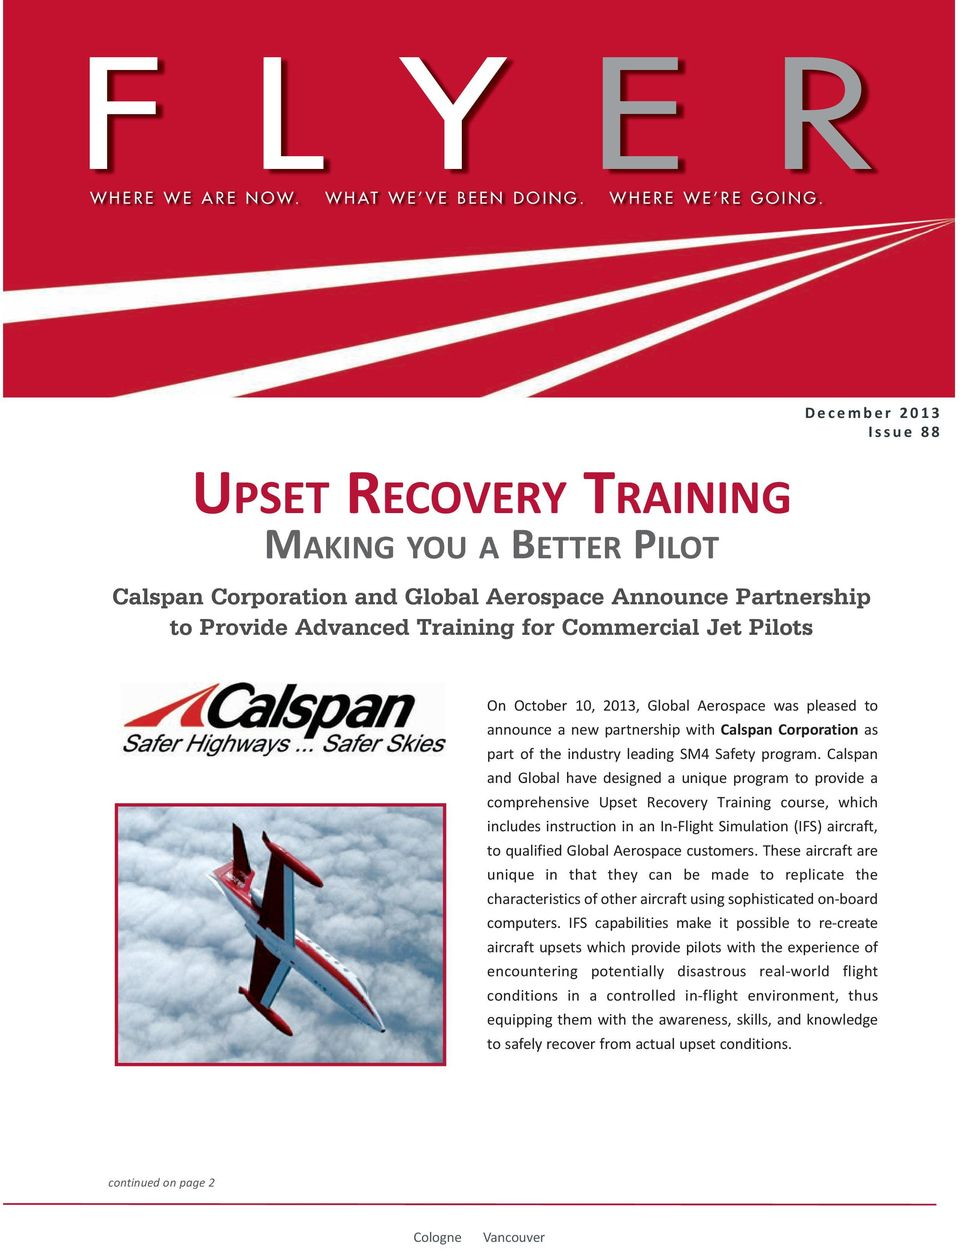 October 10, 2013, Global Aerospace was pleased to announce a new partnership with Calspan Corporation as part of the industry leading SM4 Safety program.